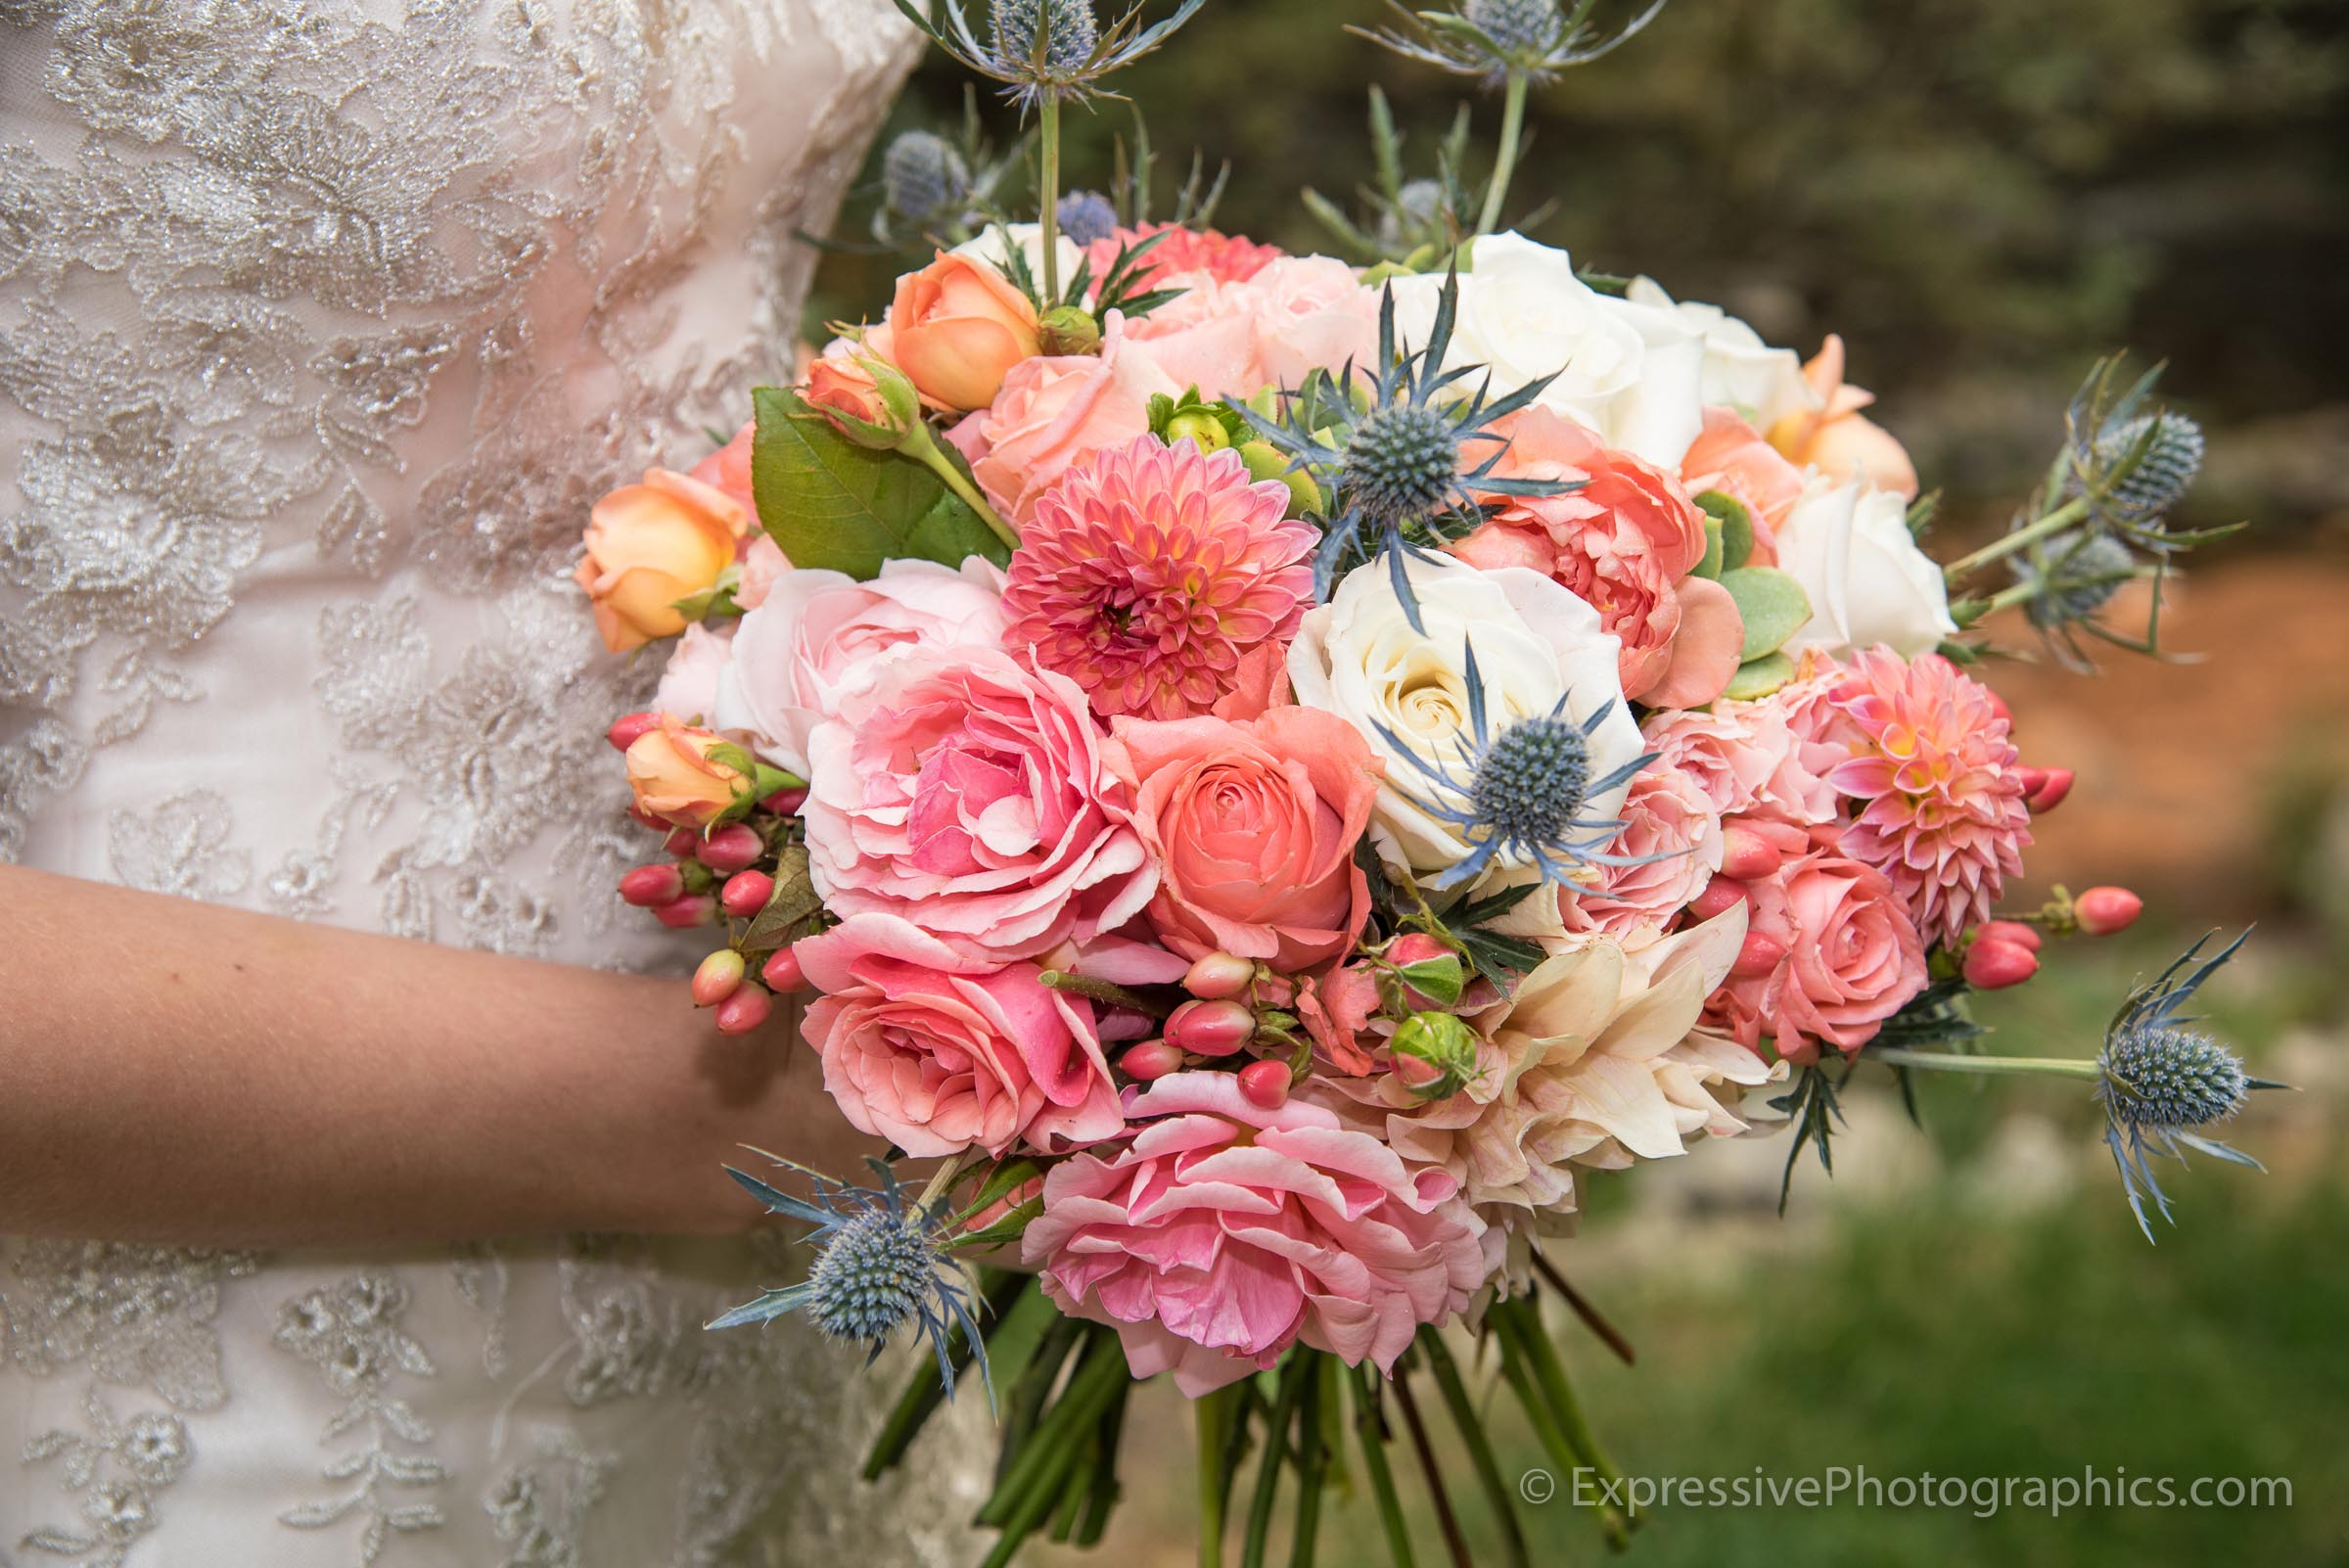 Expressive-Photographics-big-sur-flowers-bridal-bouquet-20160723_0182.jpg